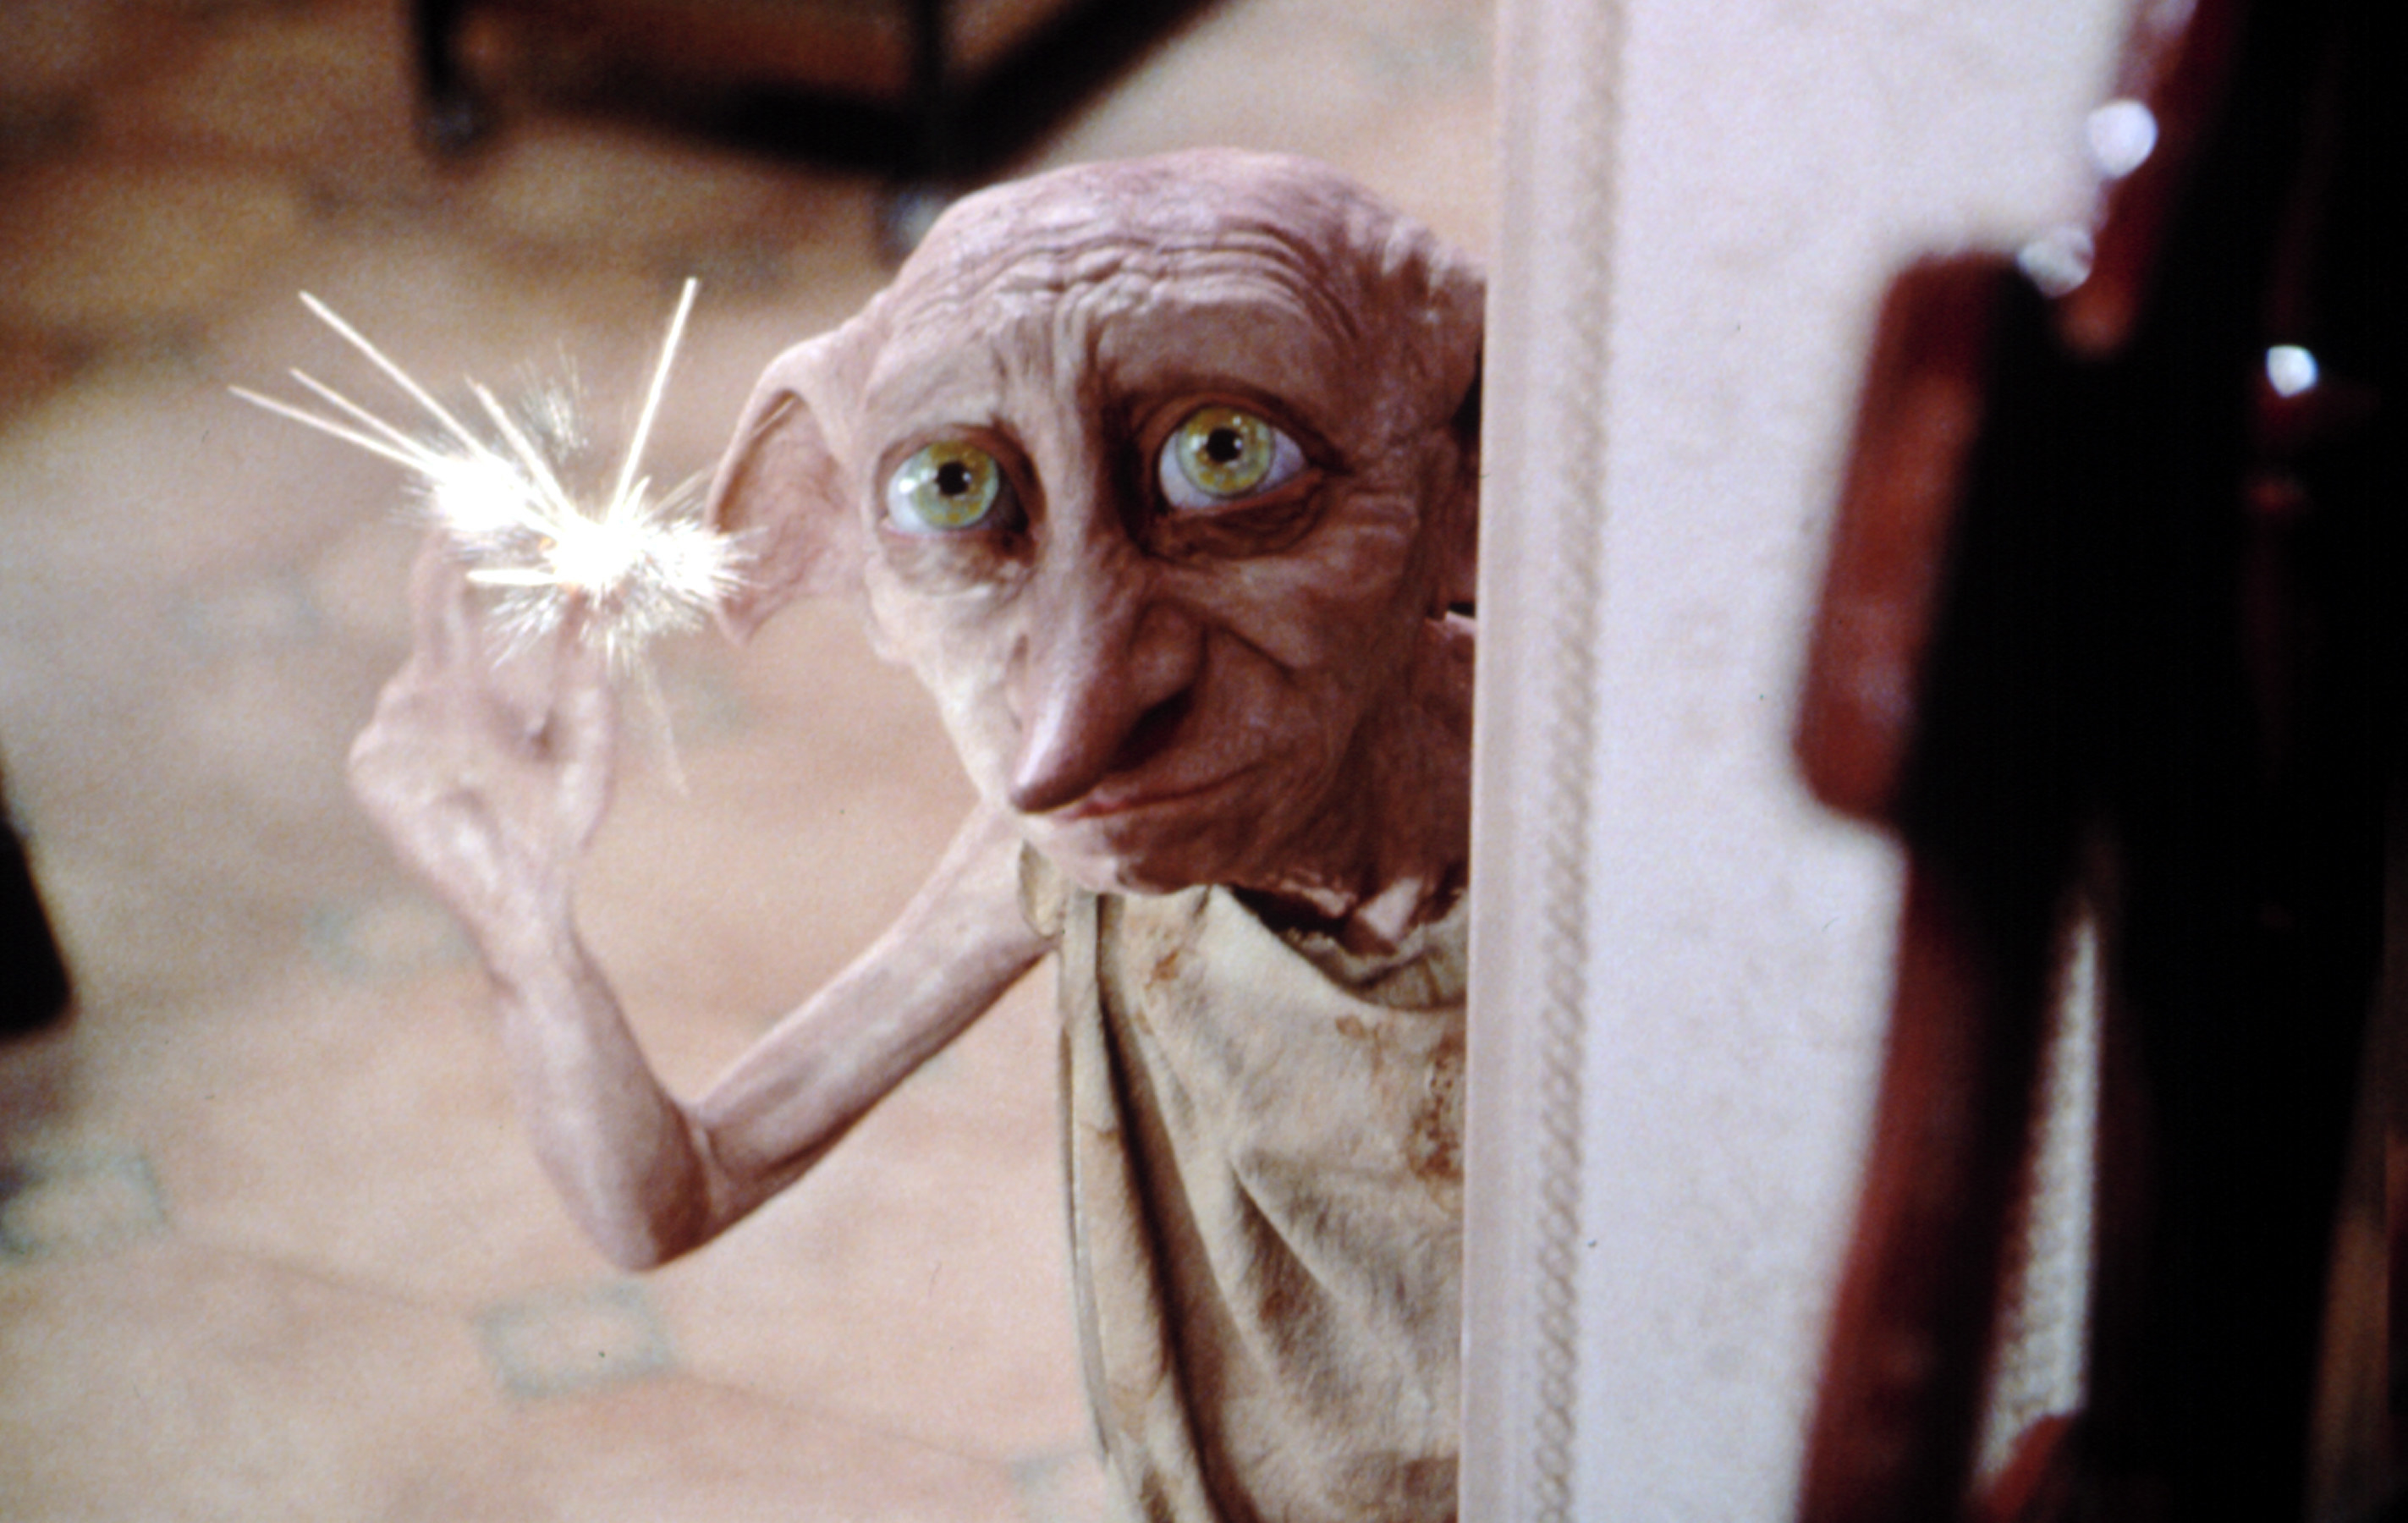 Dobby snapping his fingers and sending sparks into the air